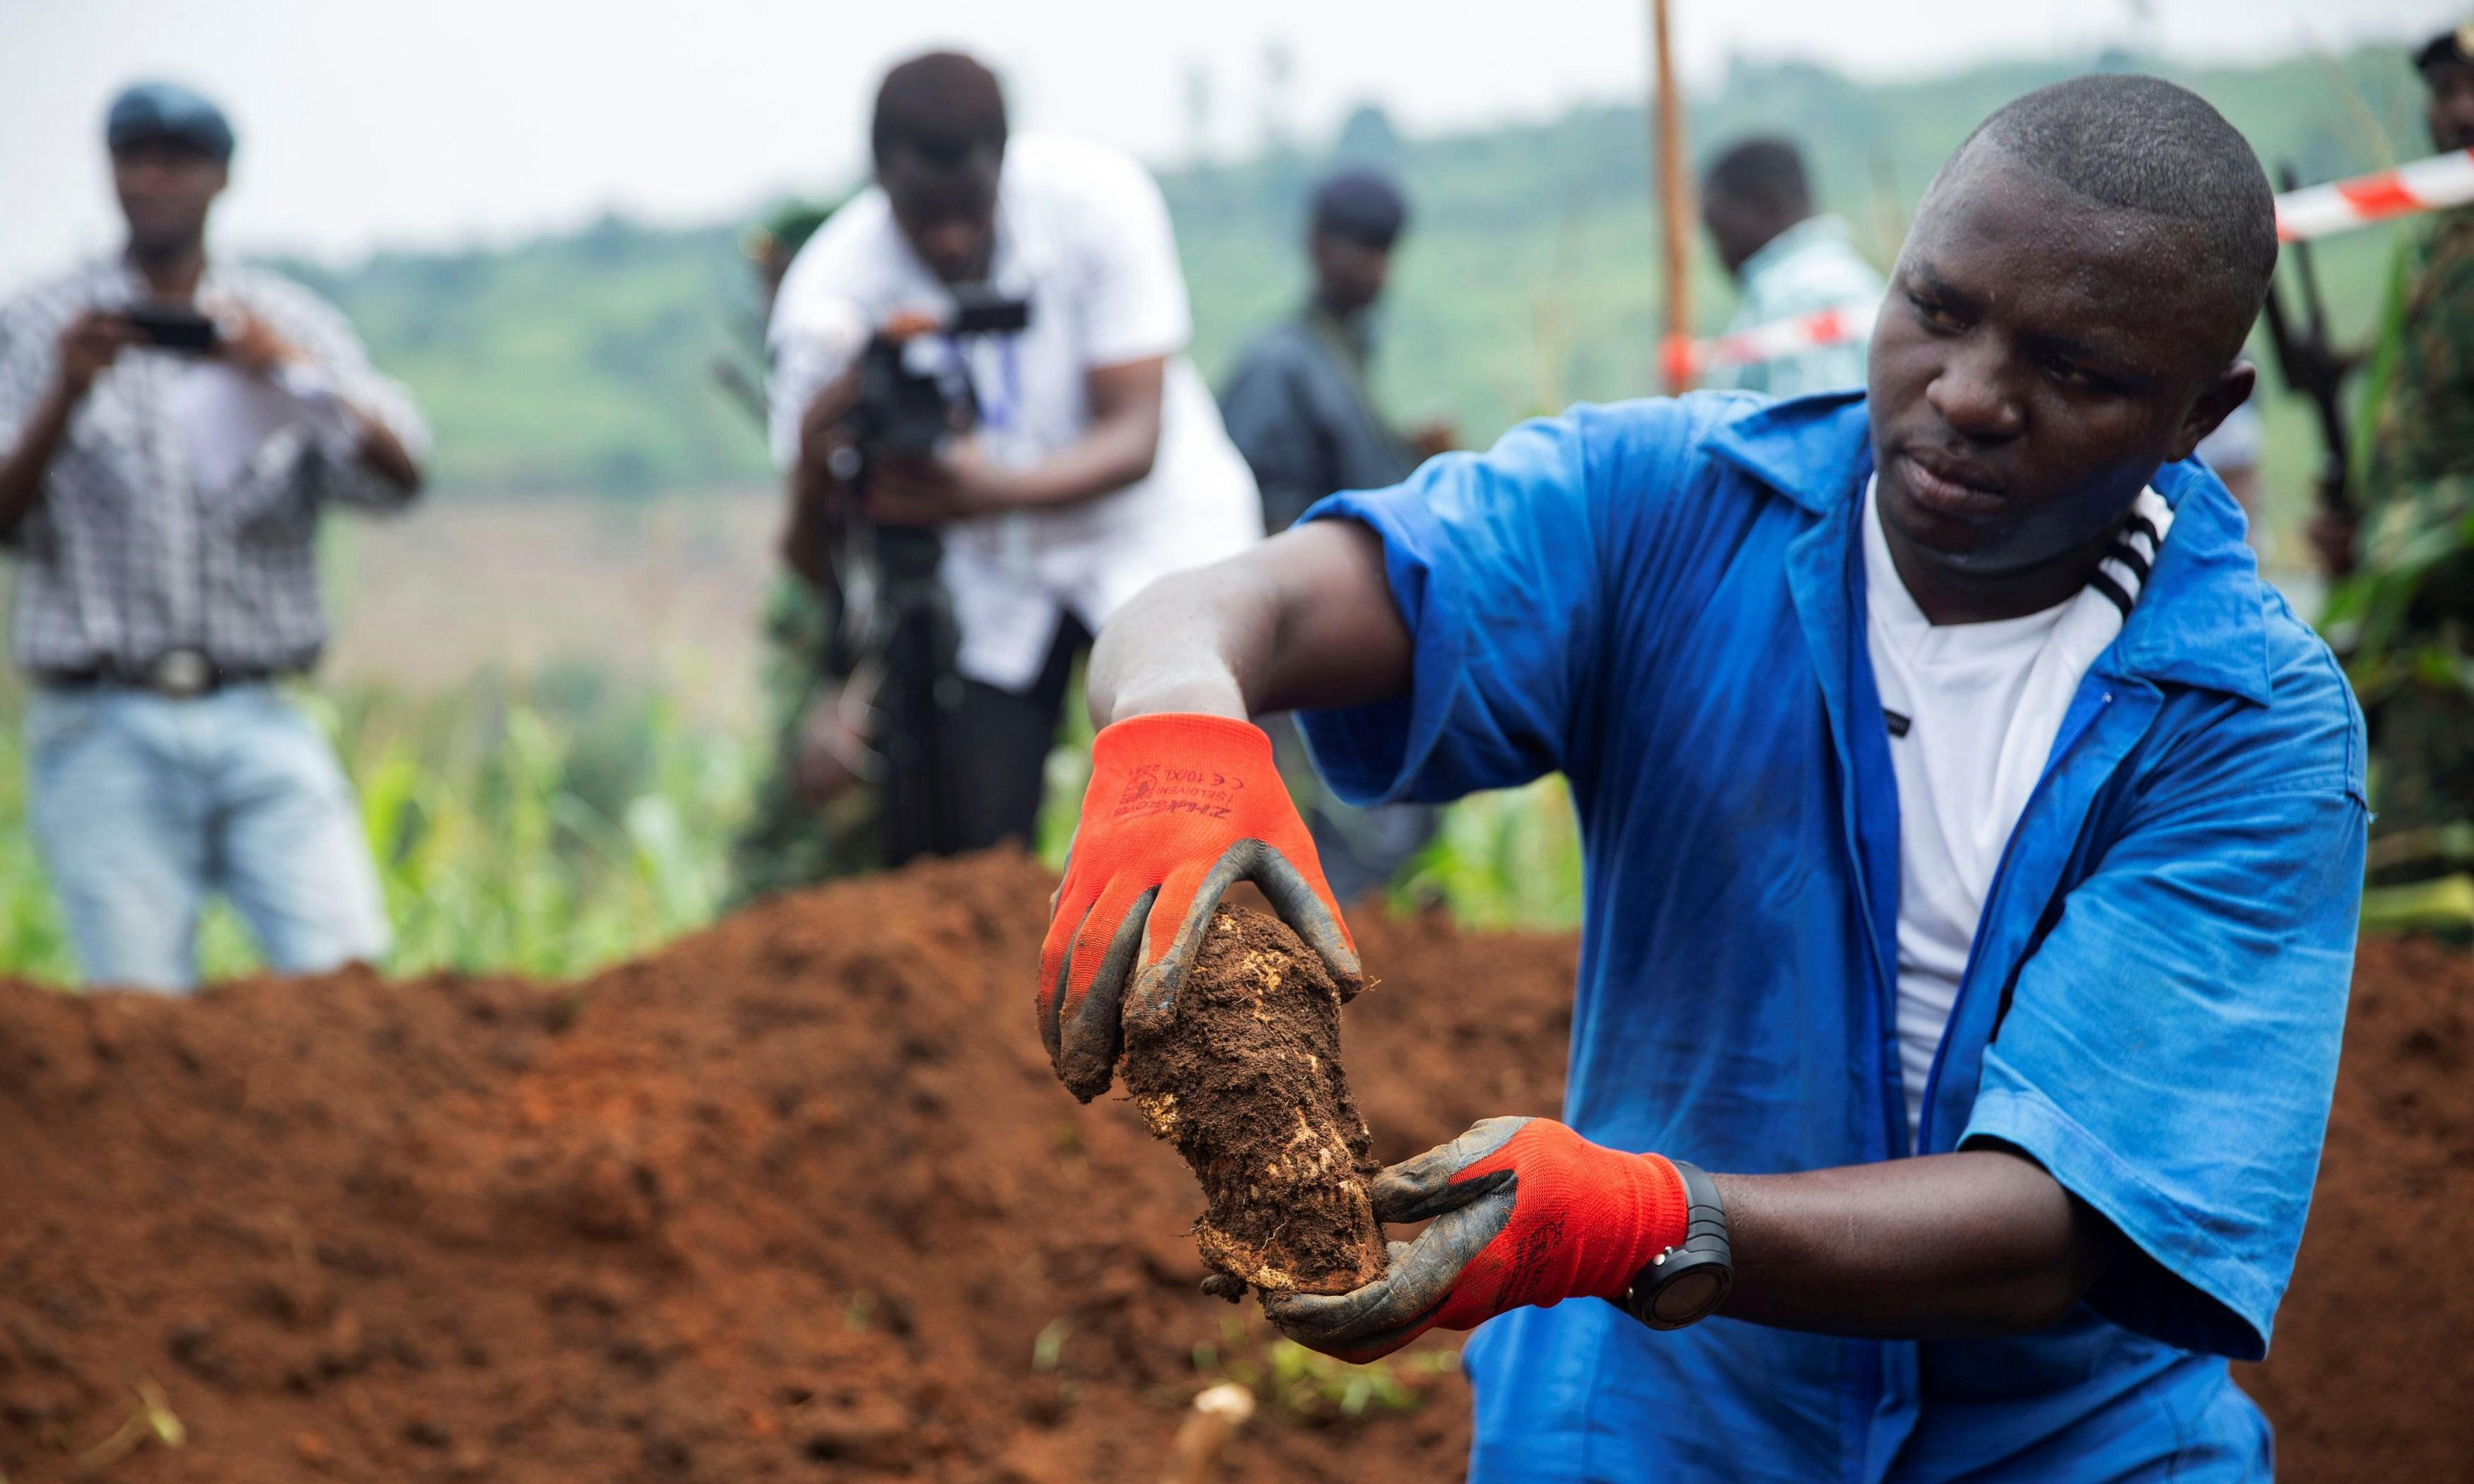 More than 6,000 bodies found in six mass grave sites in Burundi